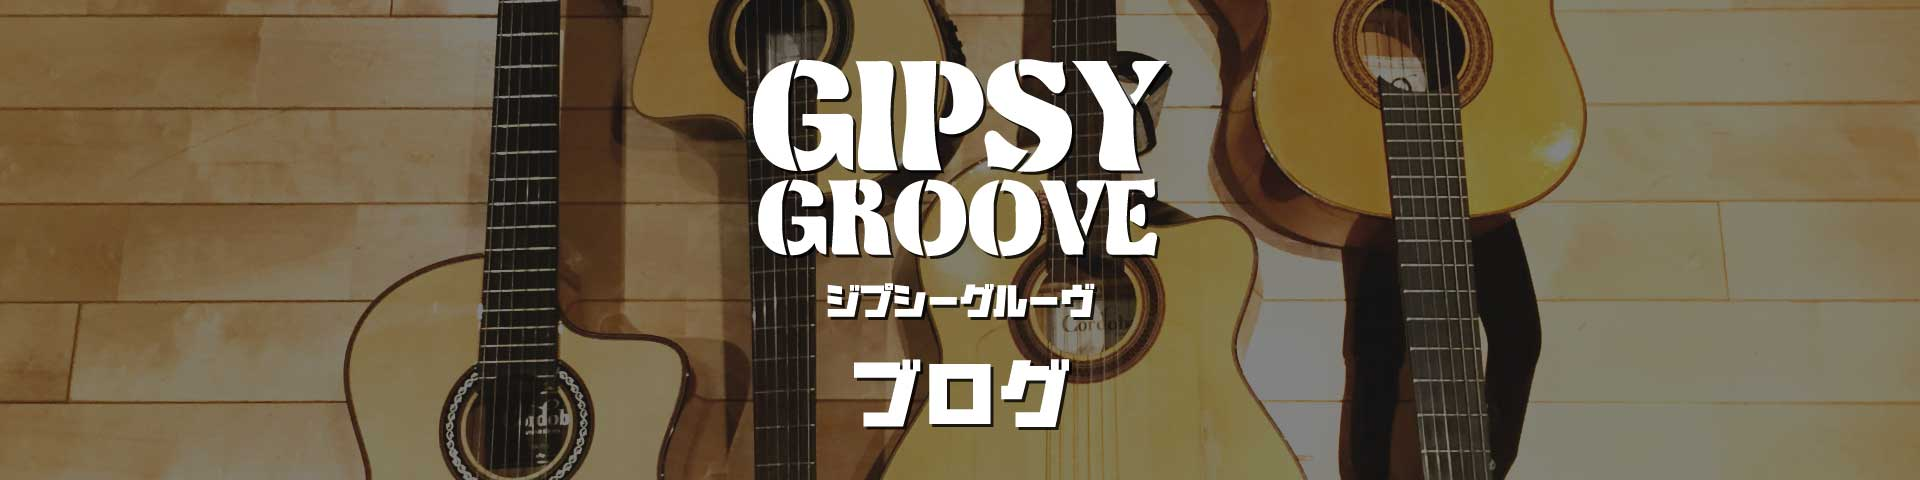 Gipsy Groove ブログ